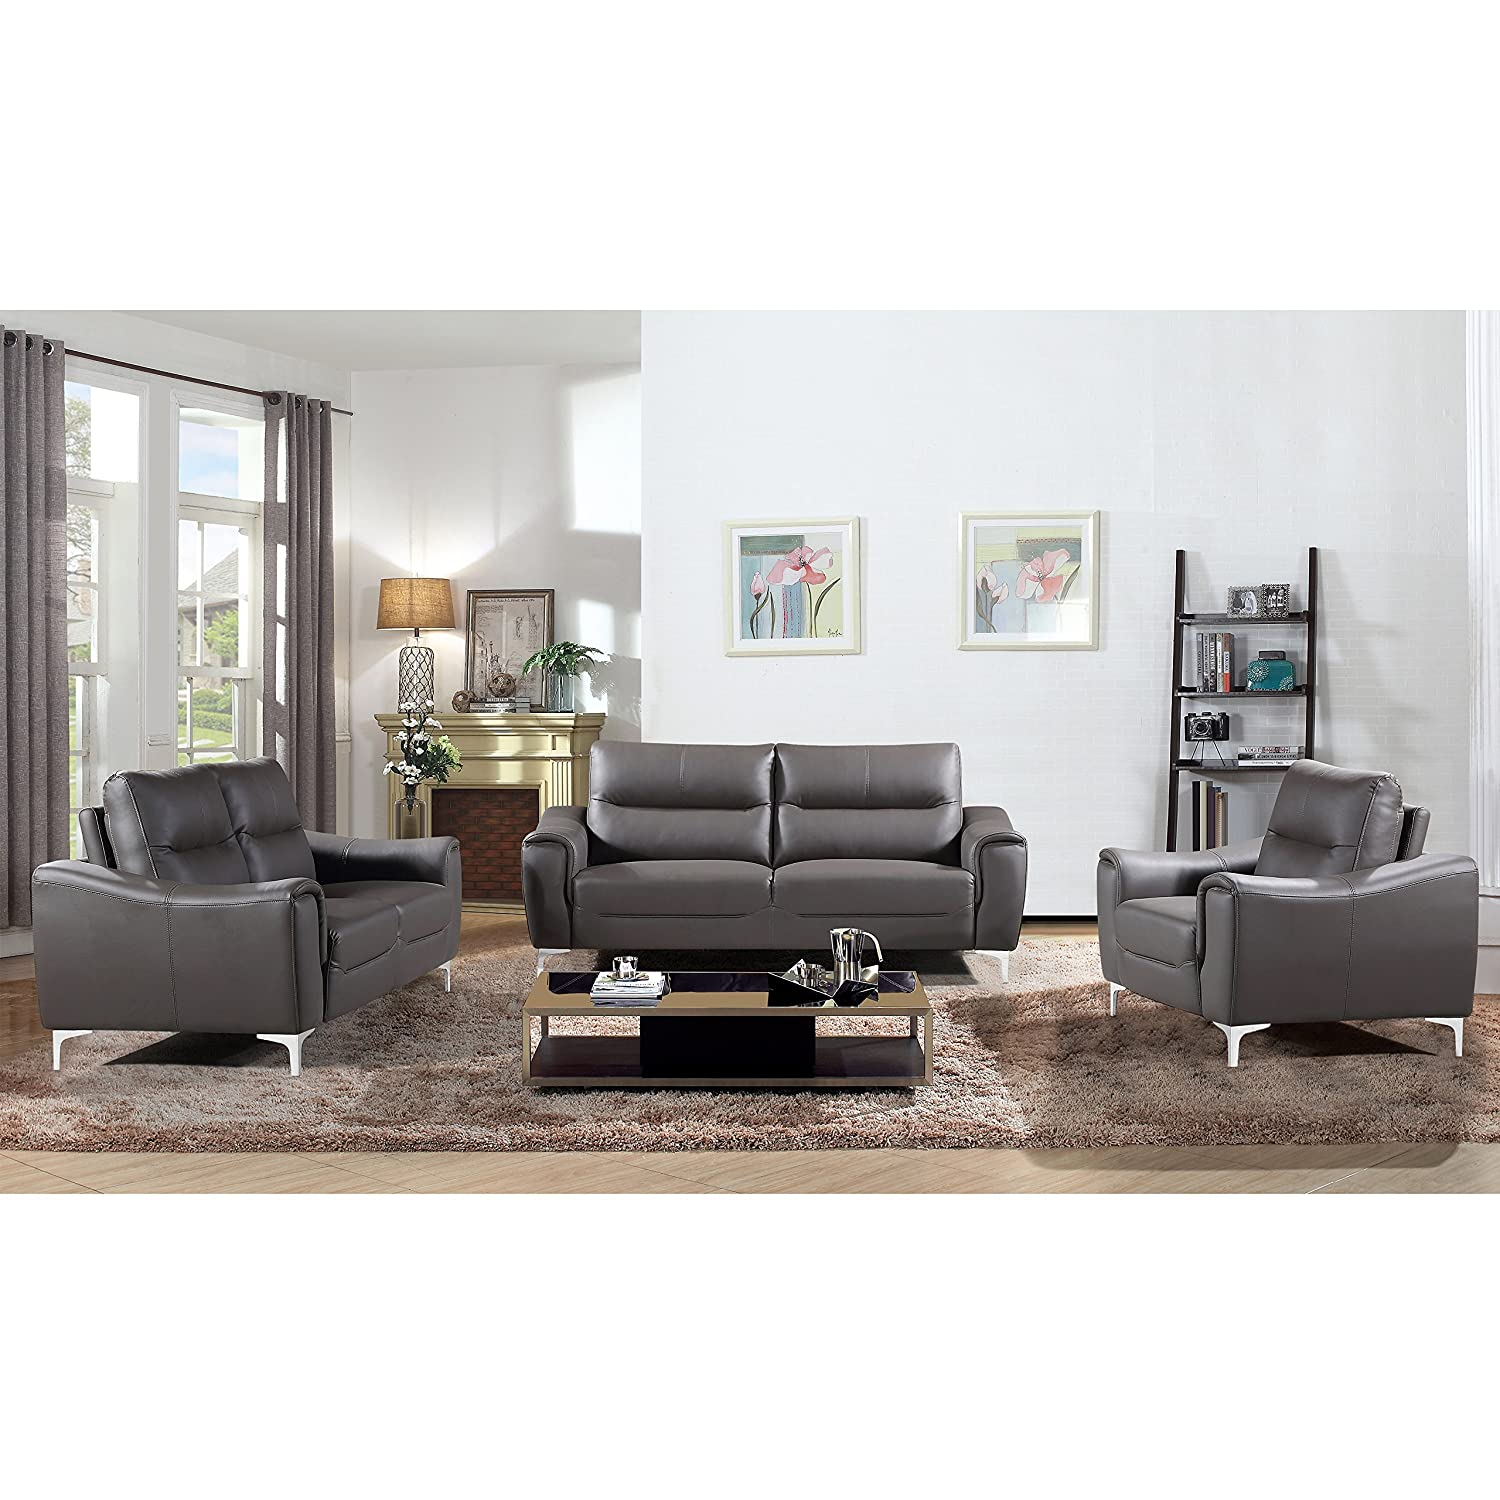 Amazon com ac pacific rachel collection ultra modern living room sofa set with sofa loveseat and armchair plush cushions and splayed leg finish gray